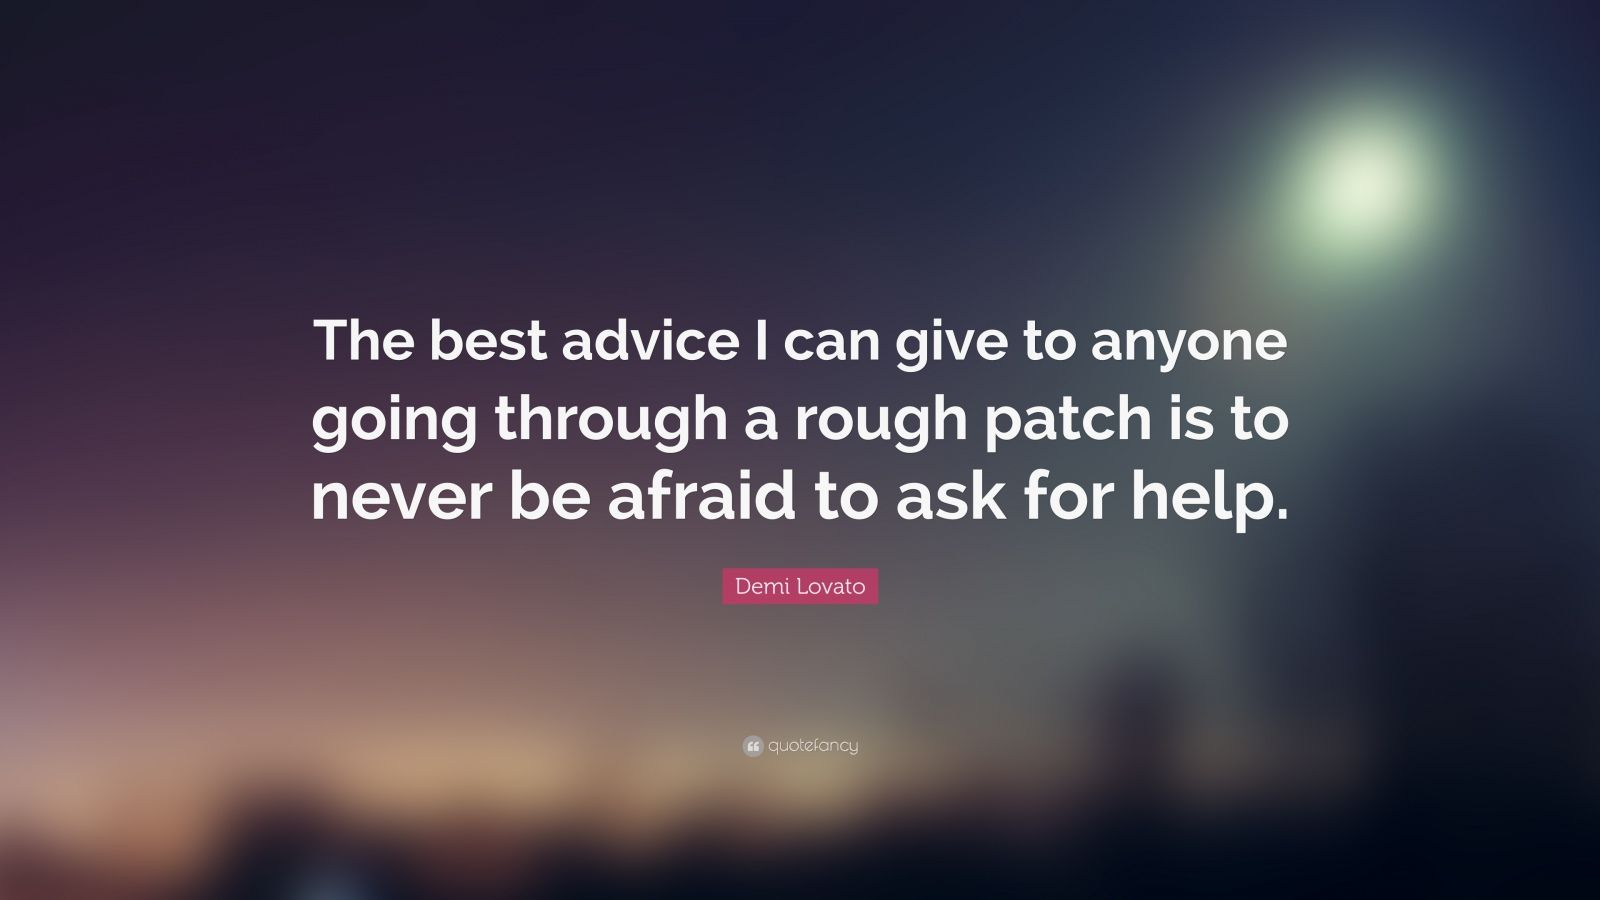 """Demi Lovato Quote: """"The best advice I can give to anyone going through a rough patch is to never be afraid to ask for help."""""""